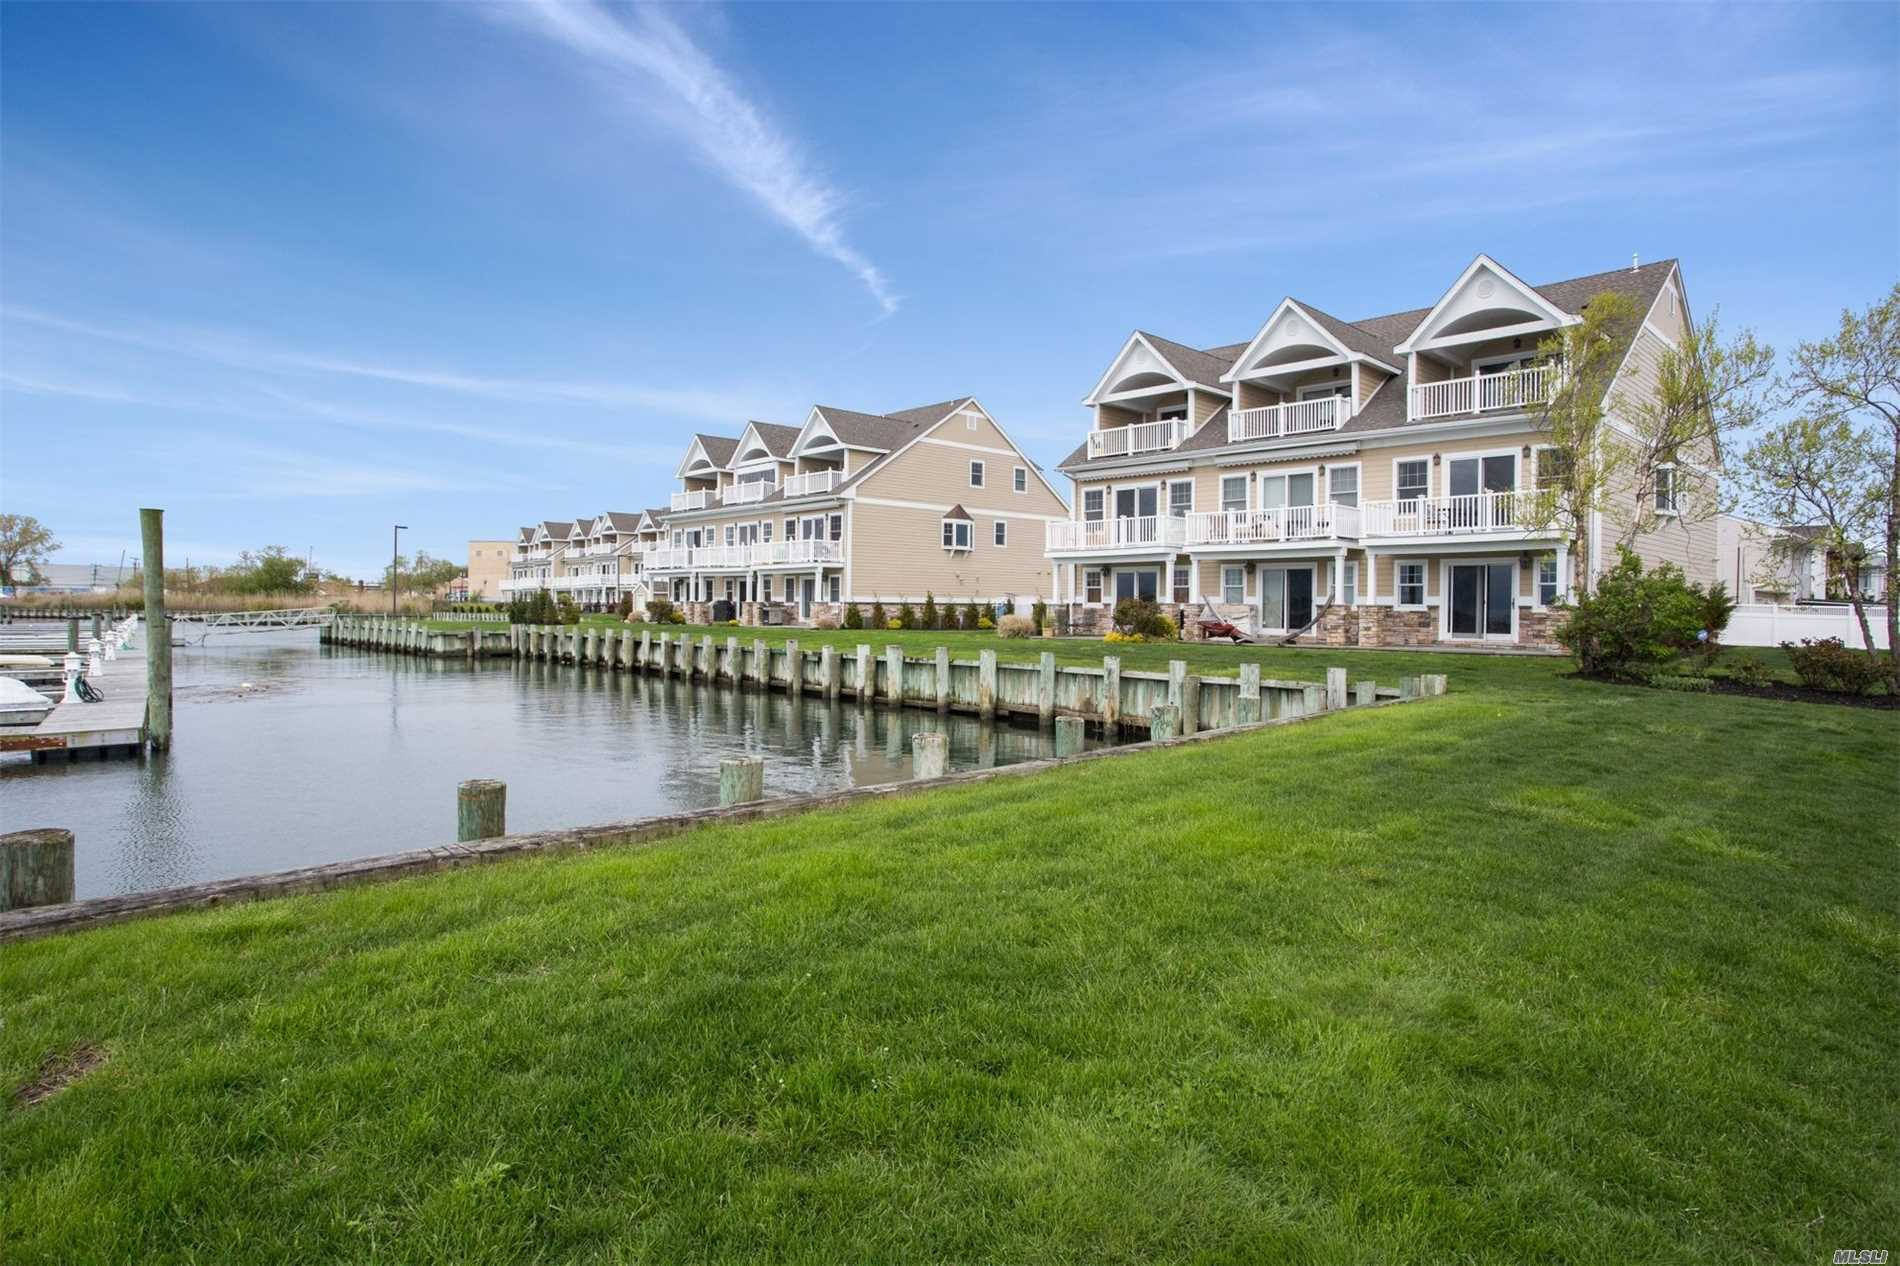 Stunning Bayfront Townhouses Feat Outstanding Views, Assigned Boat Slip, Pvt Entrance& Gar, Wood & Stone Floors, Tumble & Glass Tiles. 2 Gas Fireplaces, Viking Appliance, Marvin Windows & 3 Decks, Master Suite